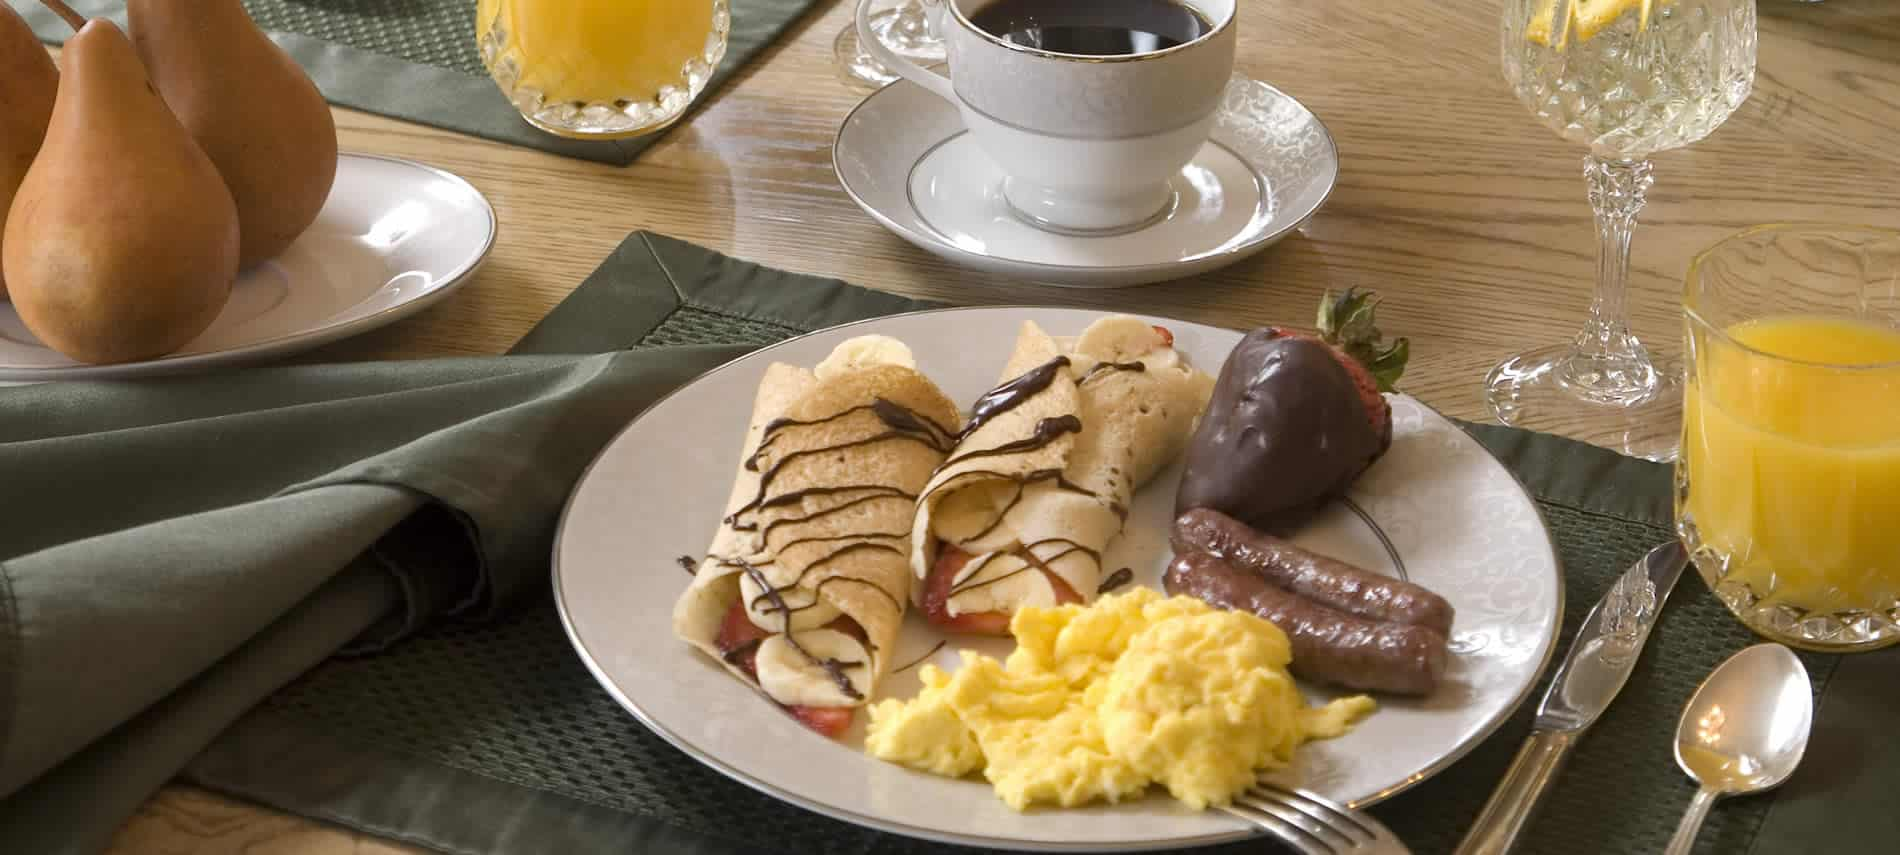 two crepes with chocolate drizzle on plate with scrambled eggs and sausage and chocolate dipped strawberry on plate on table next to coffee cup and glass of oj